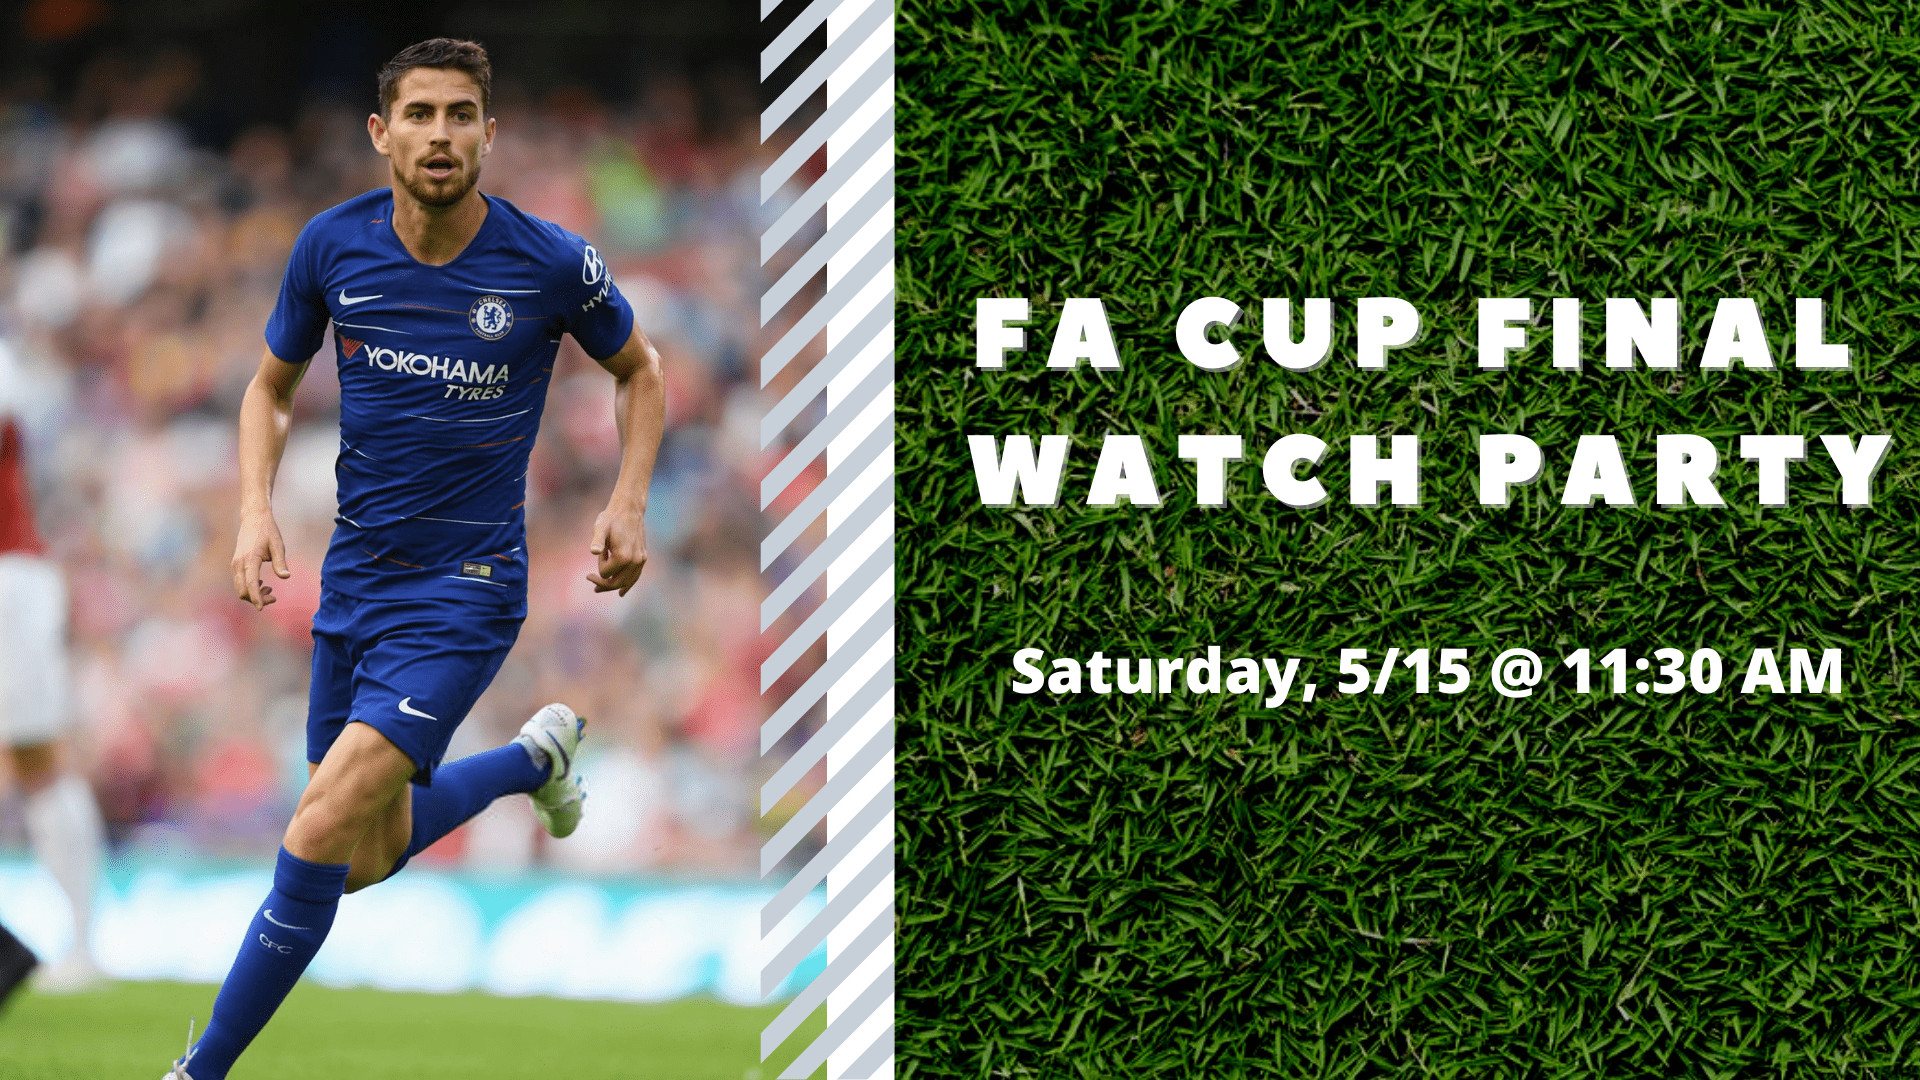 FA Cup Final Watch Party - hero